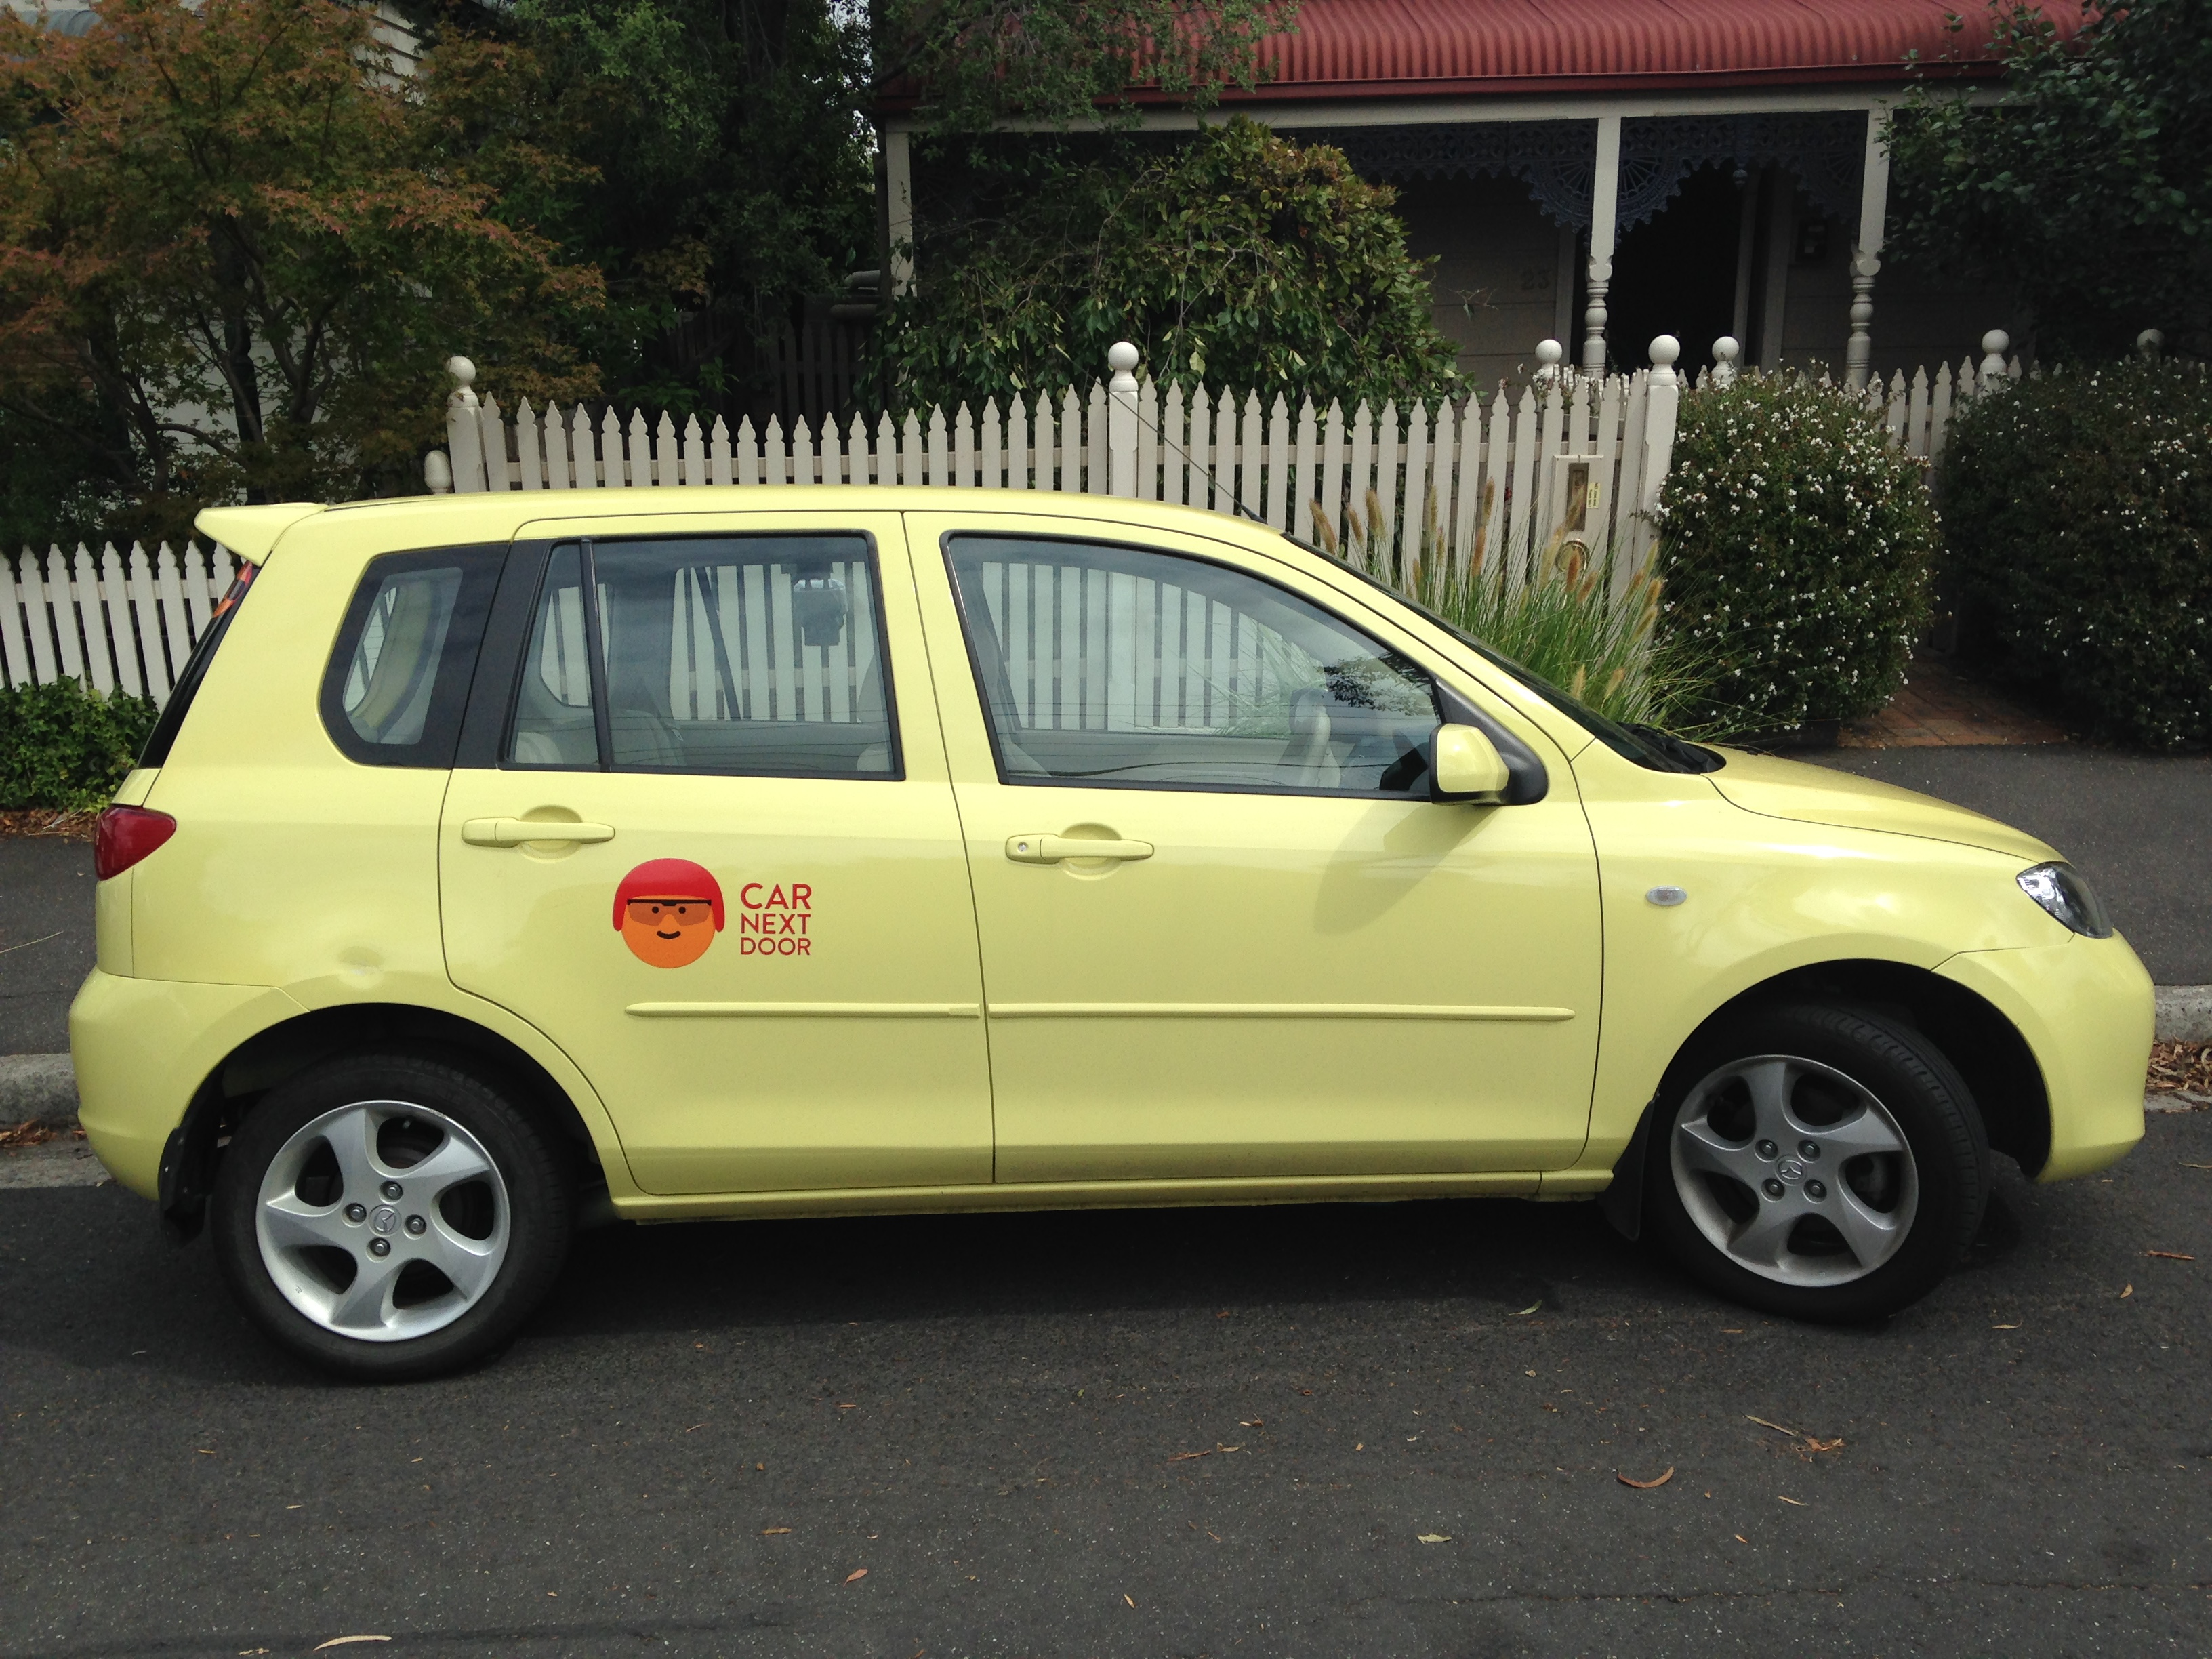 Picture of Bronwyn's 2002 Mazda Max 2